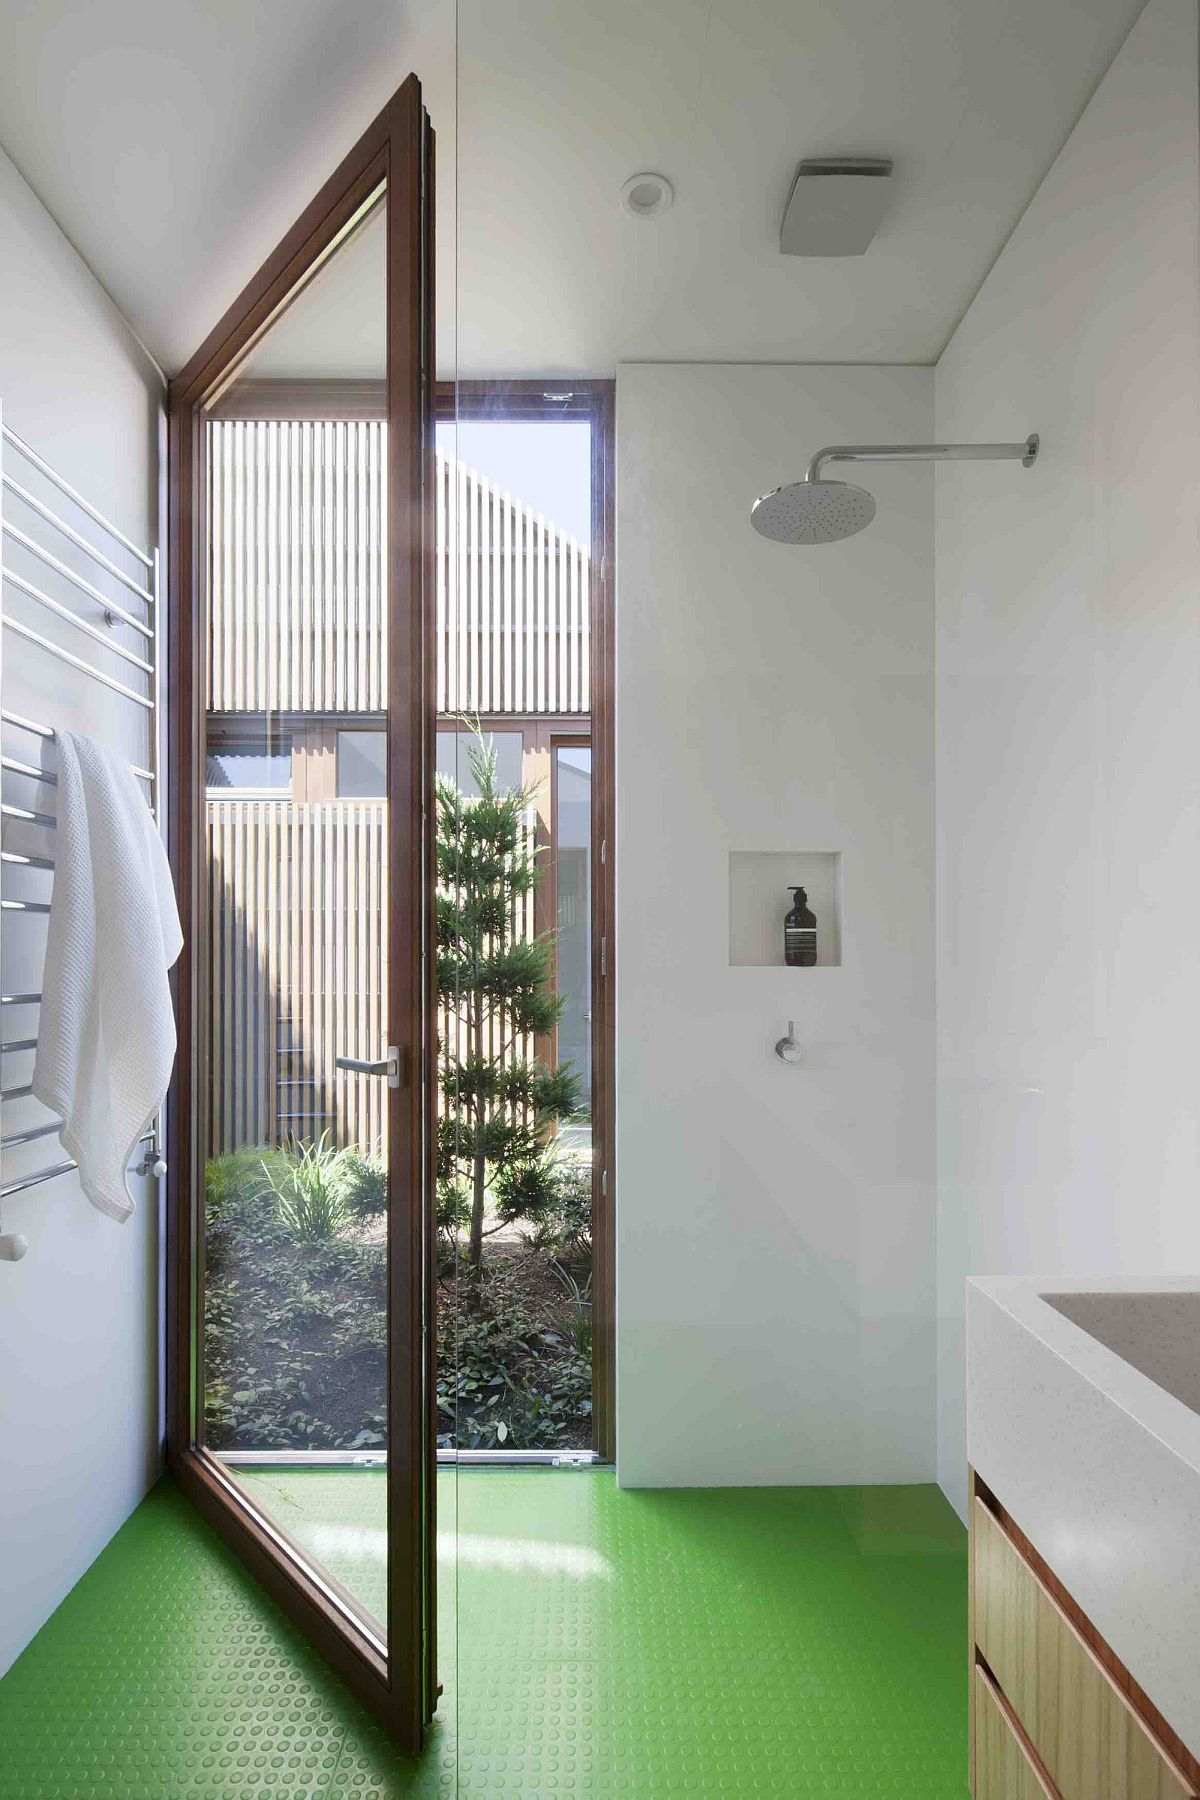 Large glass door connects the bathroom with the exterior